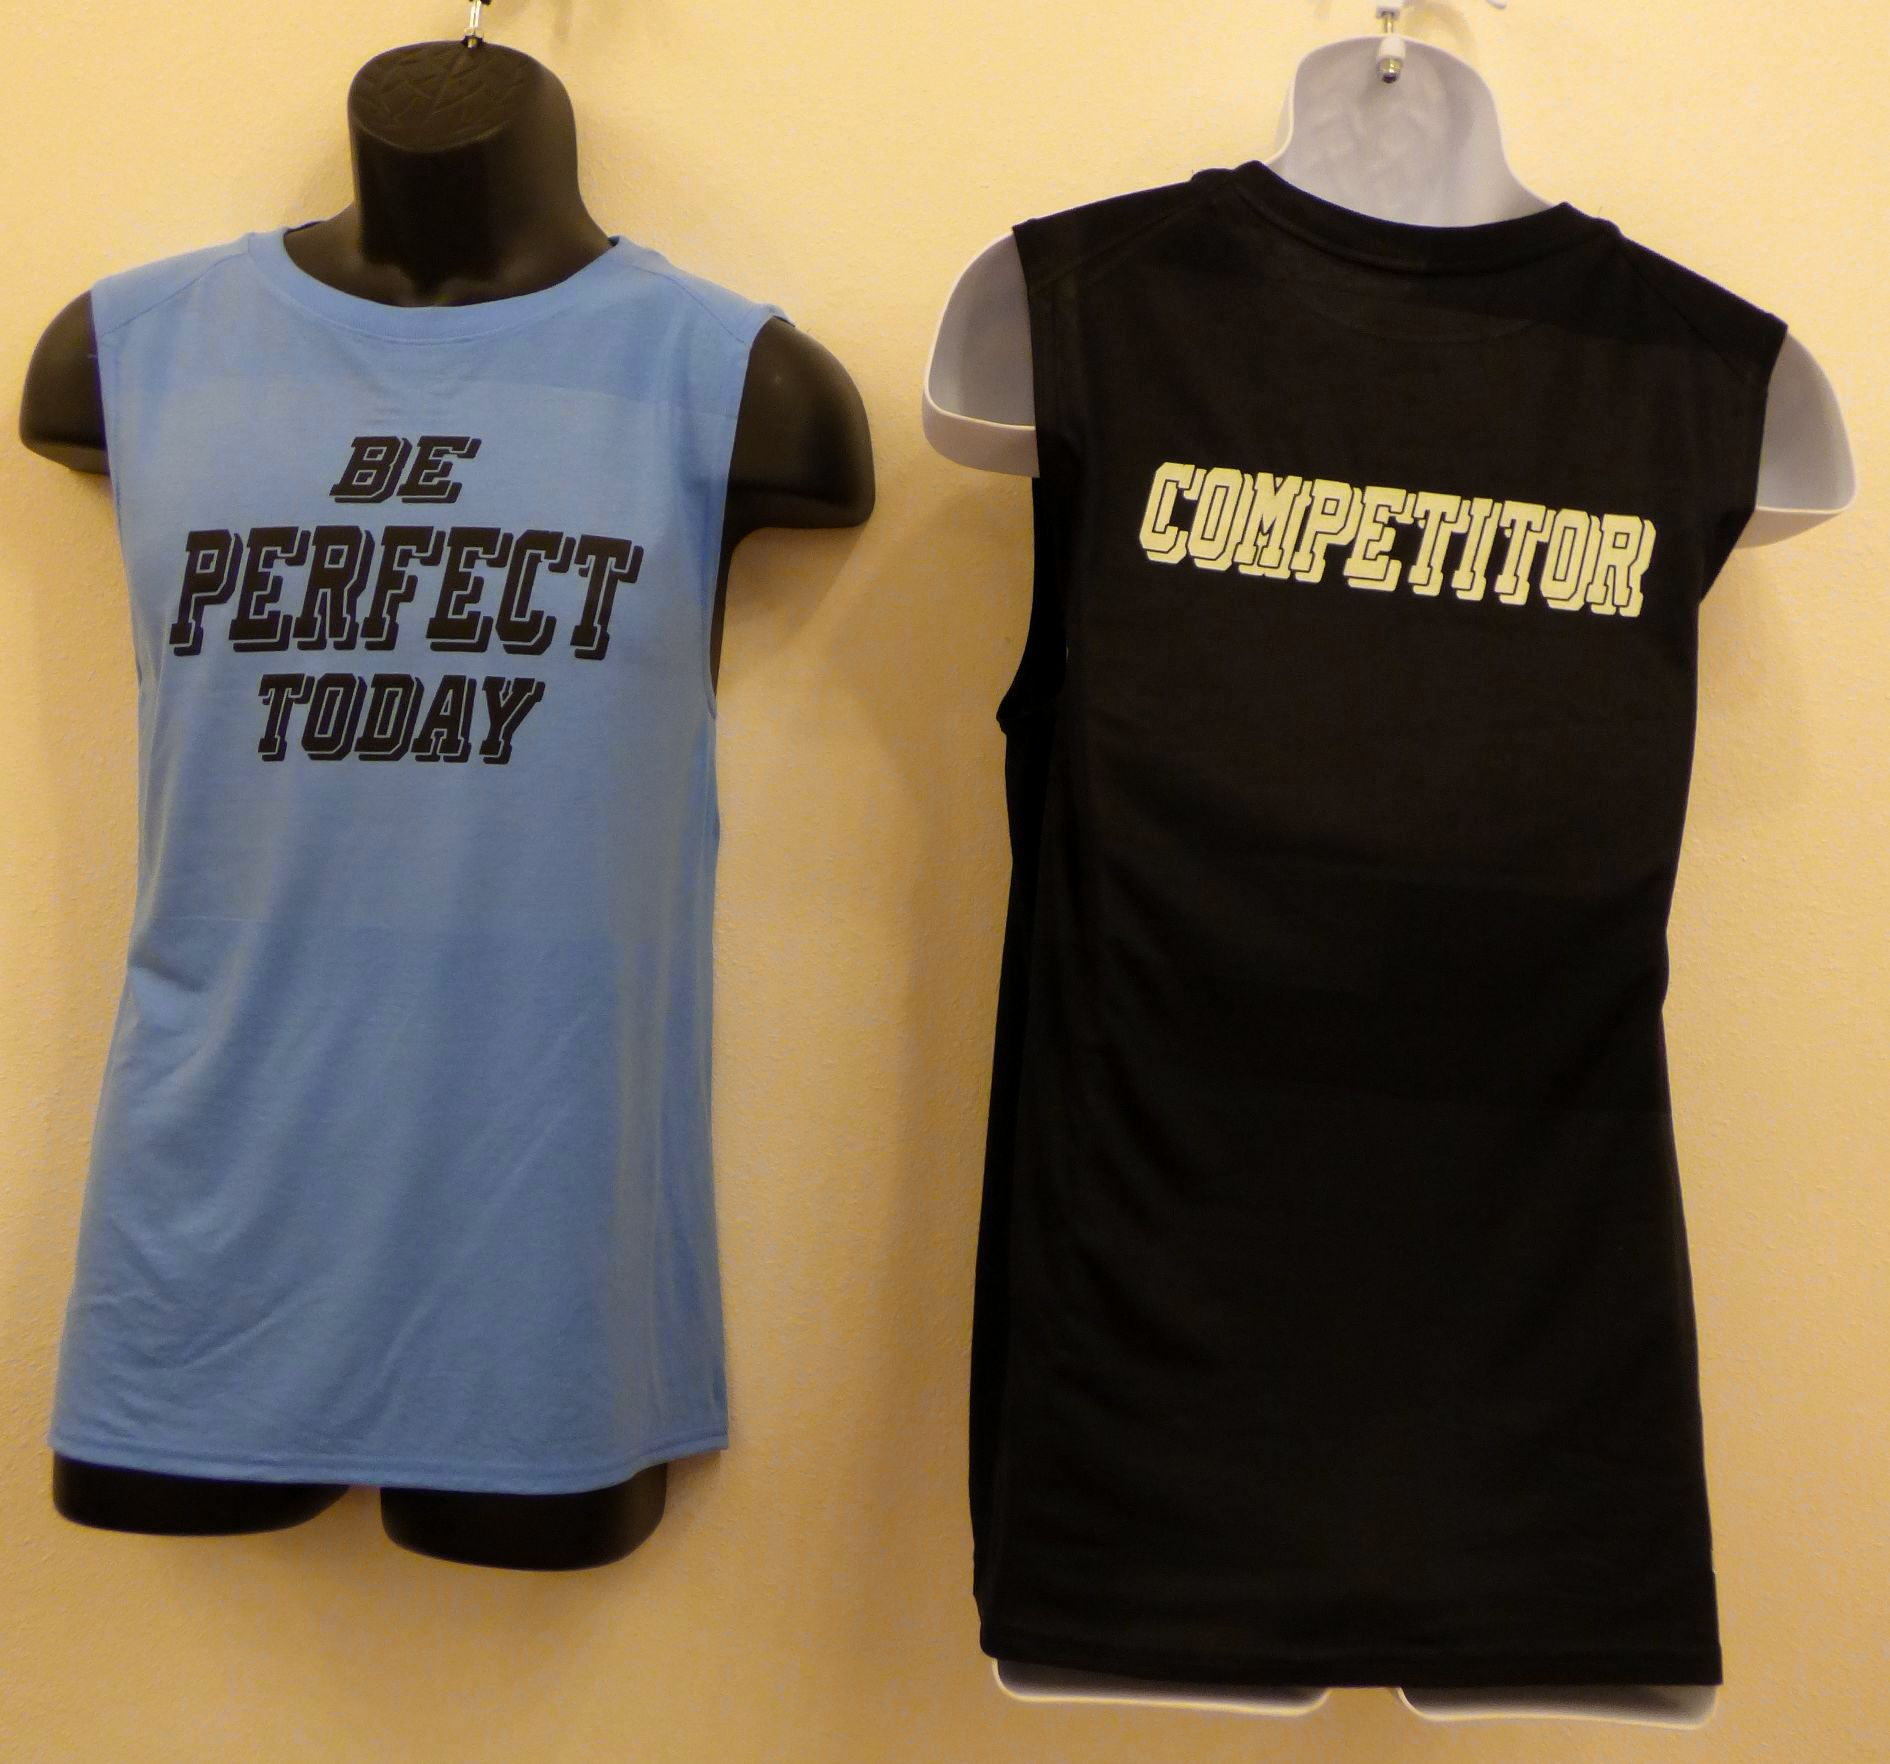 Men's 'Be Perfect Today' muscle shirt